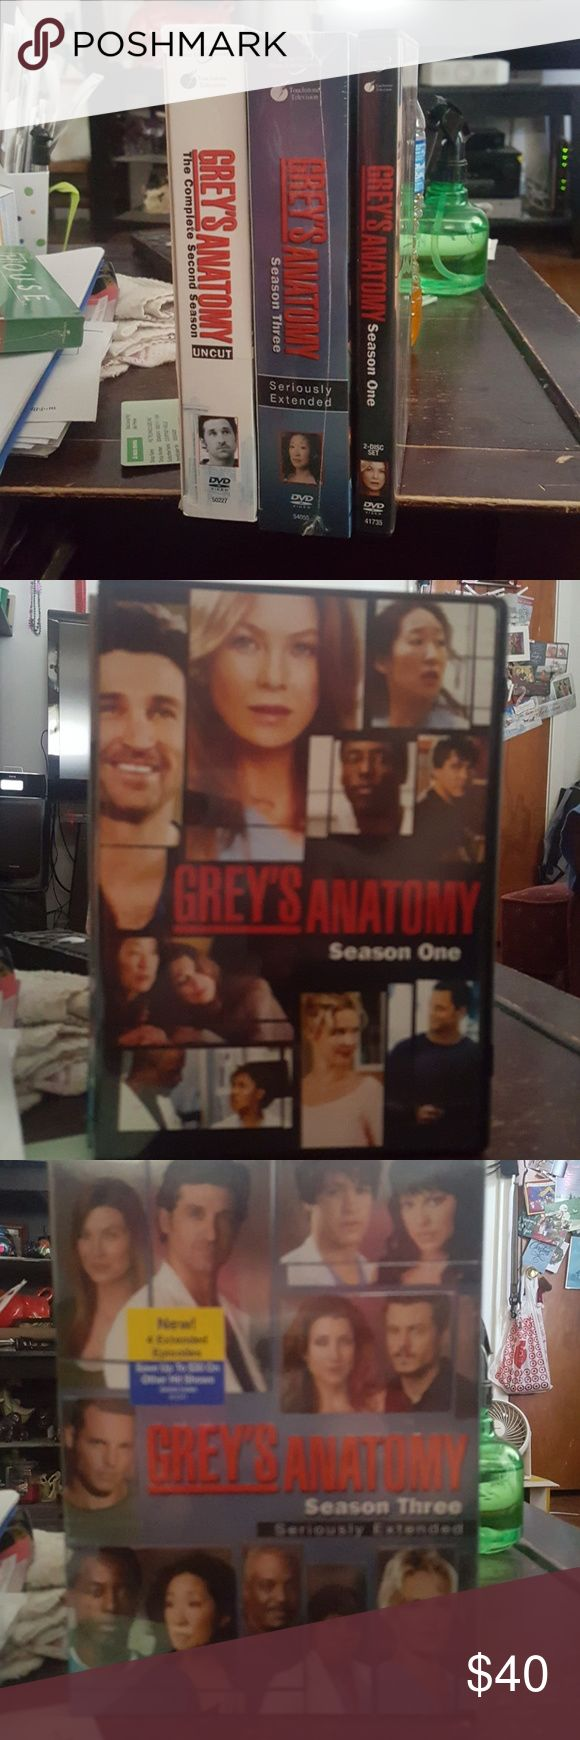 Grey's Anatomy No, not actually Meredith Grey or her anatomy; however, I do have the first 3 seasons on DVD with all the beauty and delight of McDreamy & McSteamy, and all the drama that precedes them and follows them. Season 3 has never been removed from the original shrink wrap. And they can happily be yours for a small fee. 😊 These are listed as a set, but I am willing to sell them separately. Feel free to make an offer, but please be fair and respectful! Other